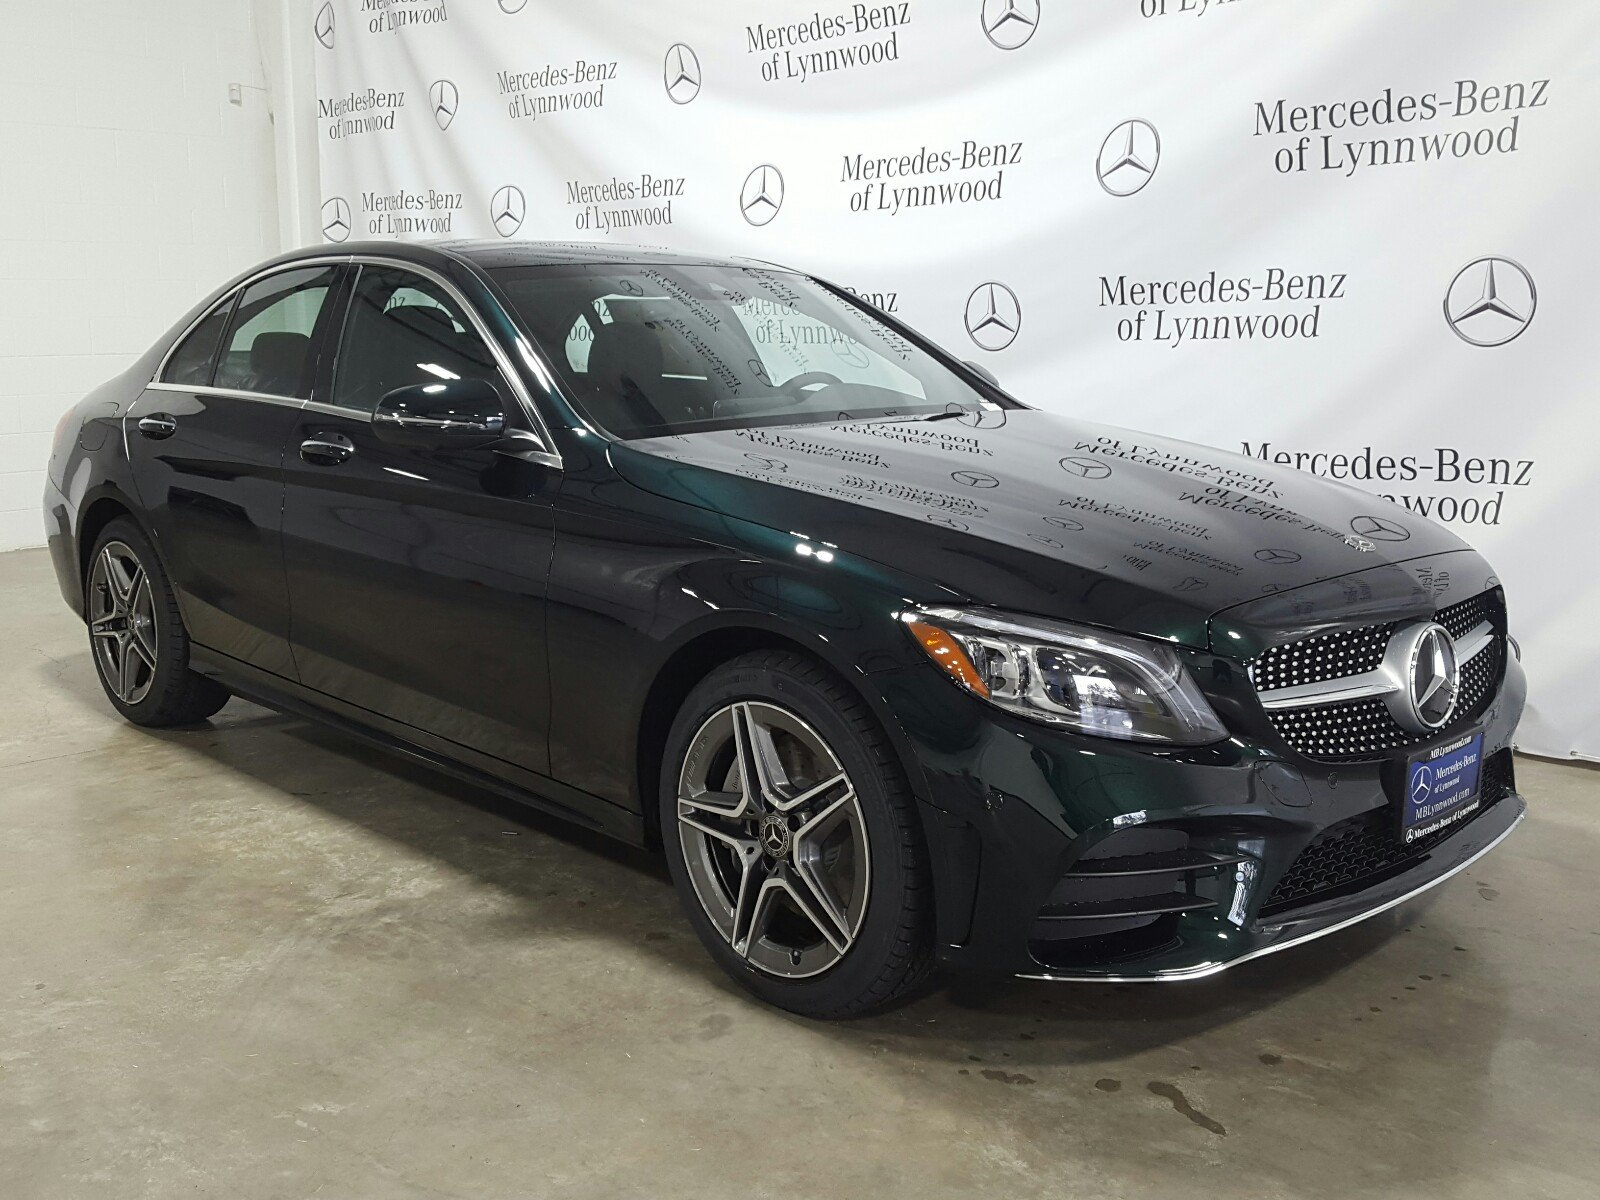 New 2019 Mercedes Benz C Class C 300 4MATIC 4dr Car in Lynnwood